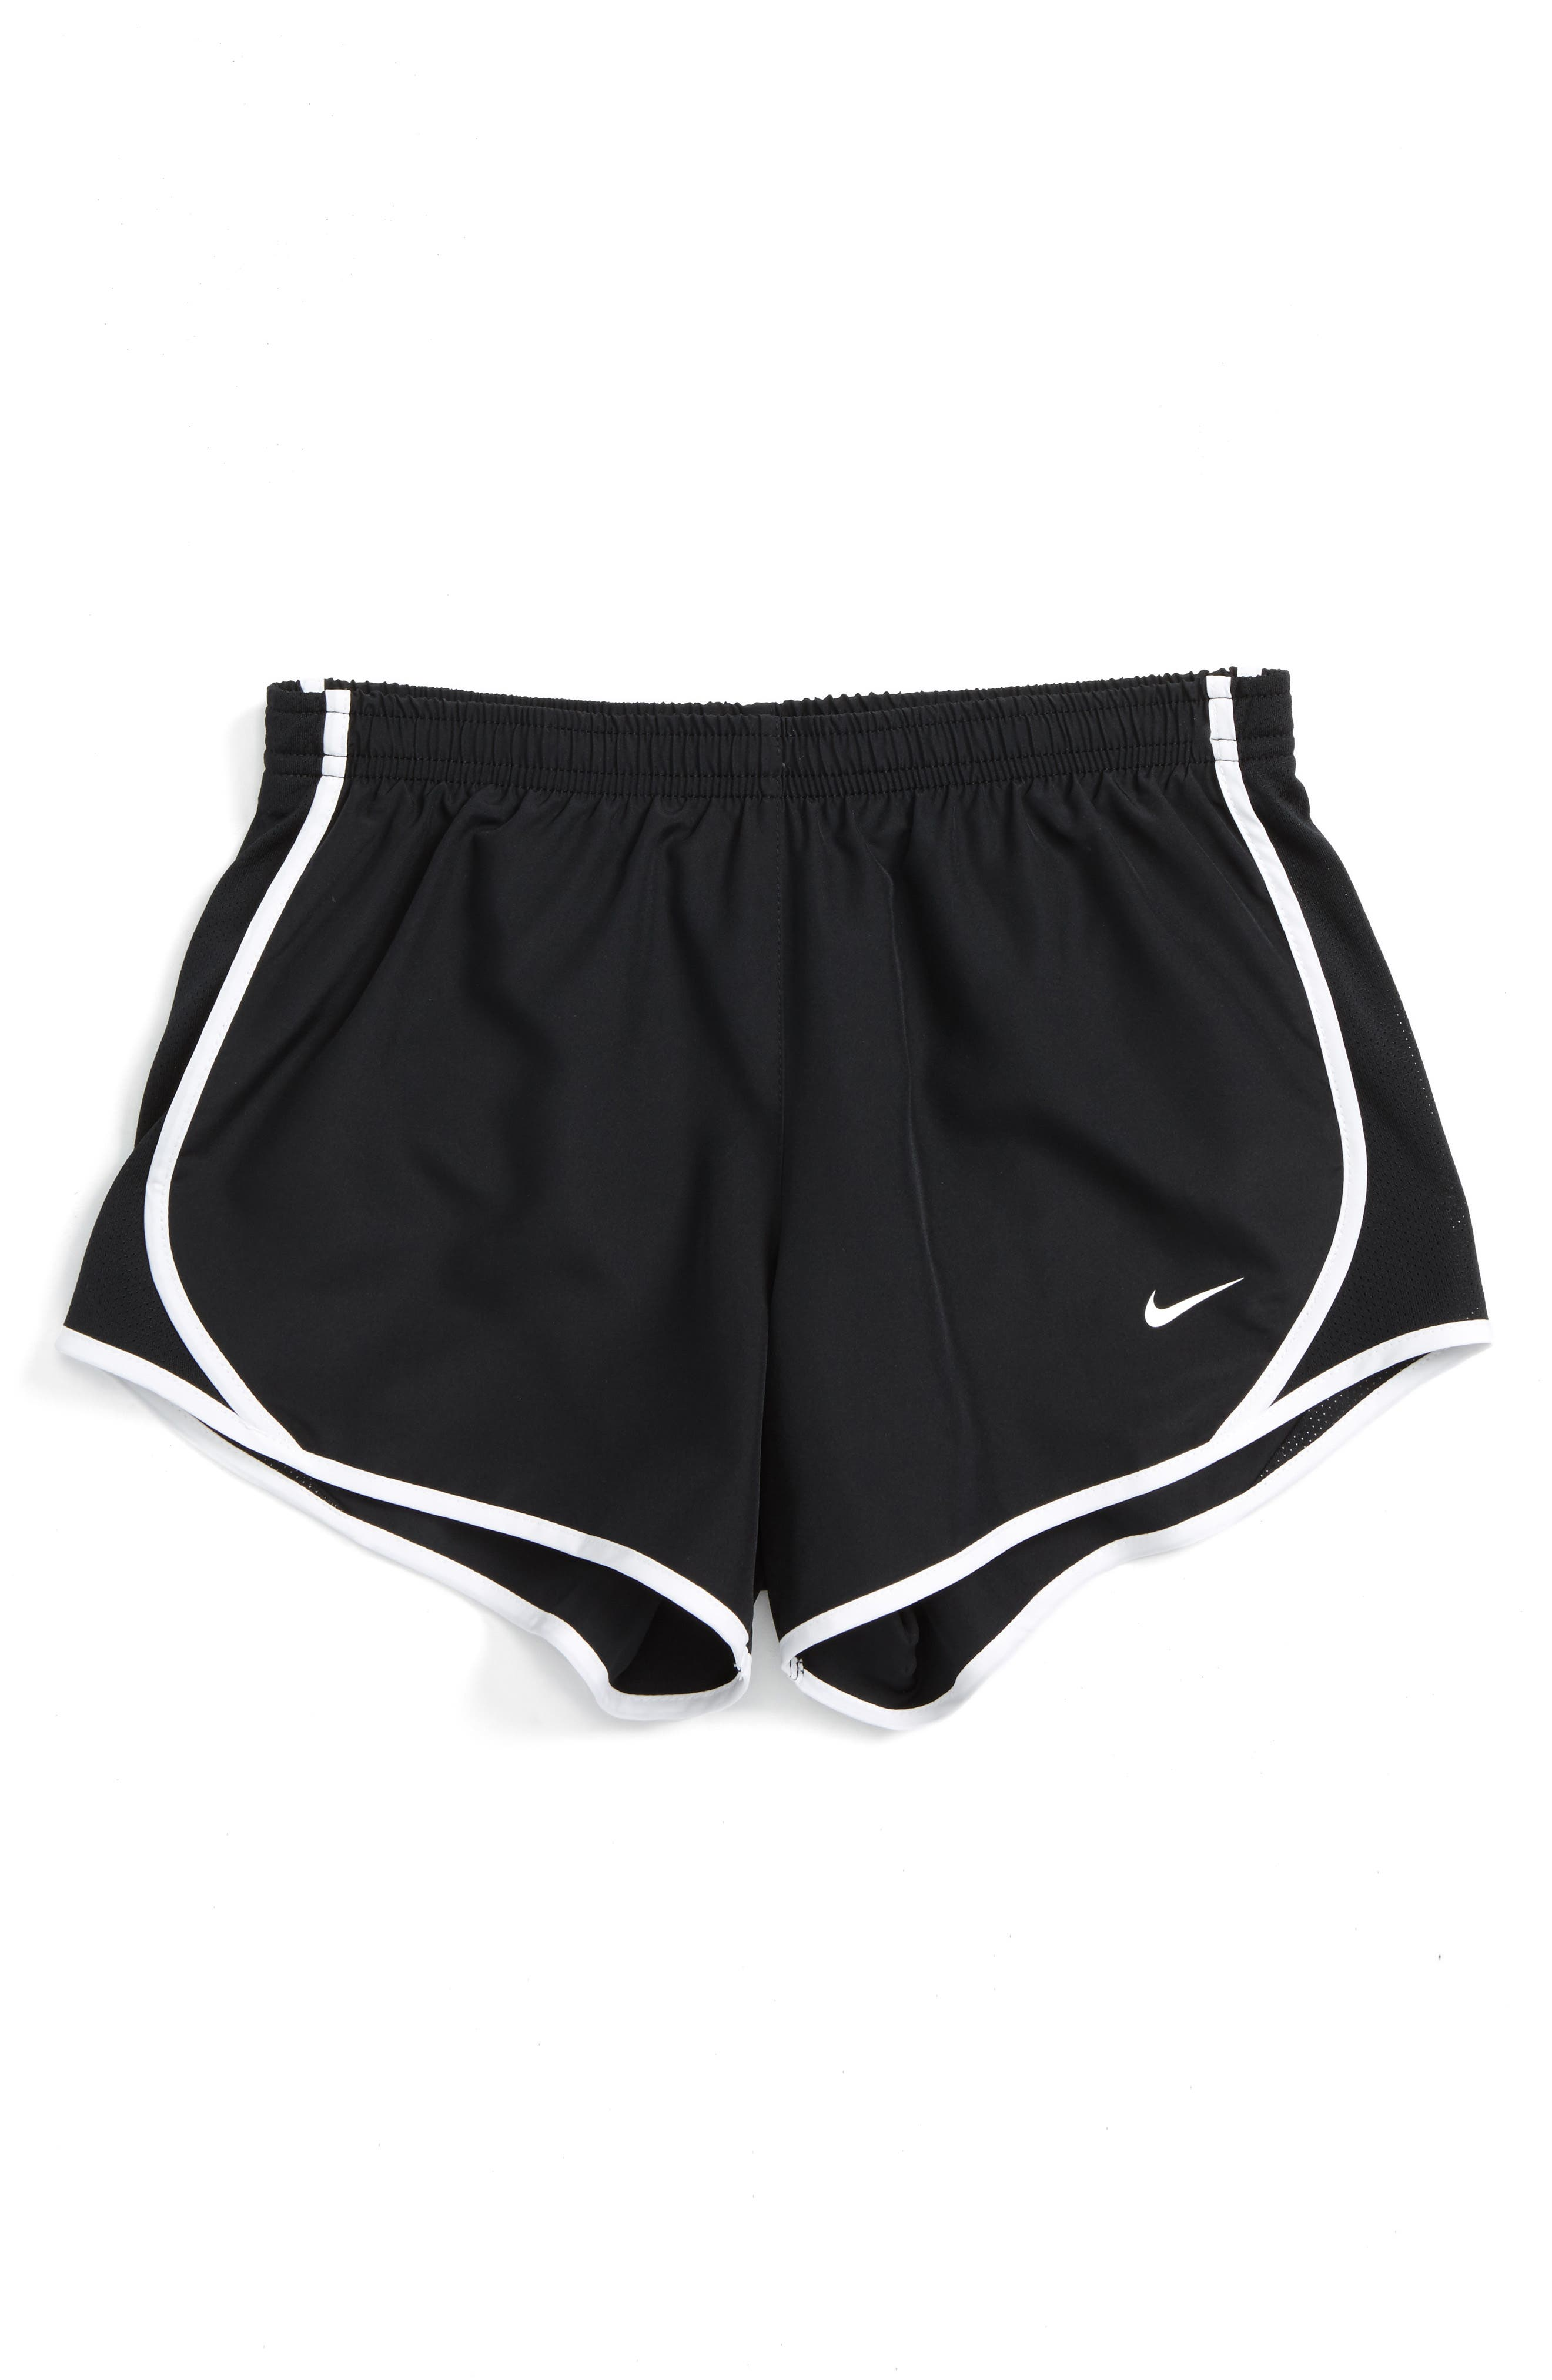 NIKE Dry Tempo Running Shorts, Main, color, BLACK/ WHITE